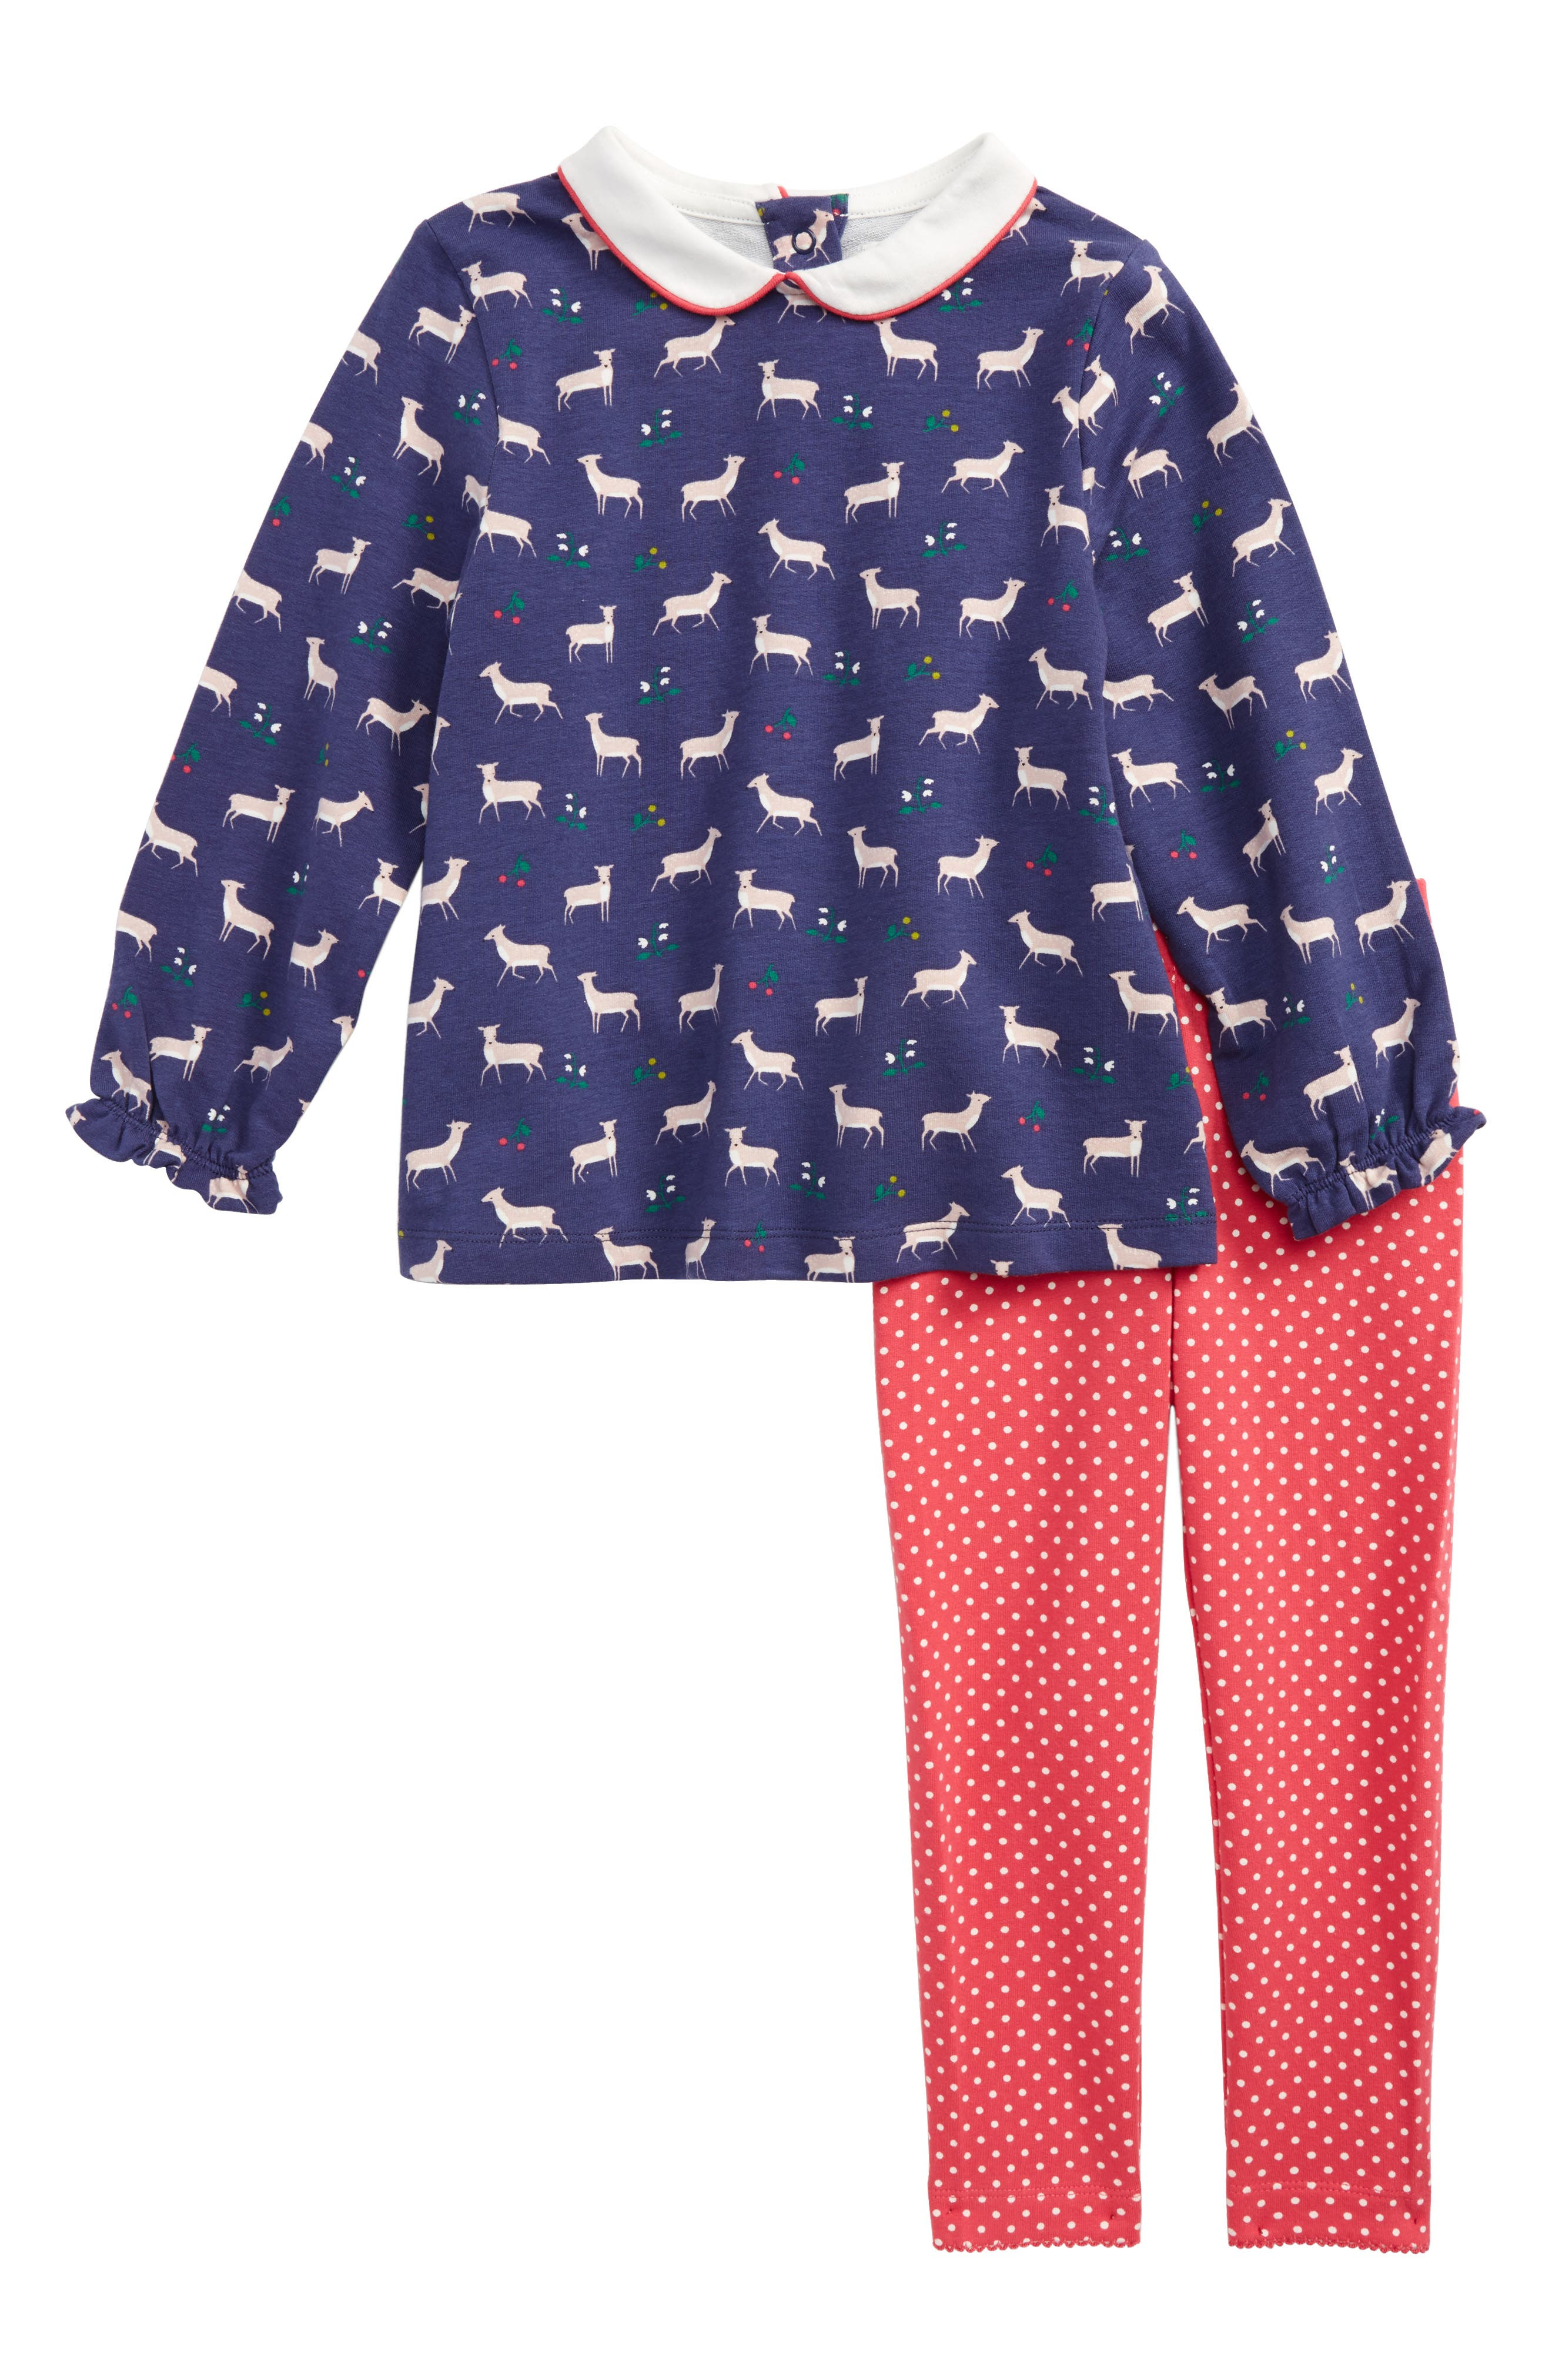 Pretty Winter Tunic & Leggings Set,                             Main thumbnail 1, color,                             Naval Blue Baby Fawn